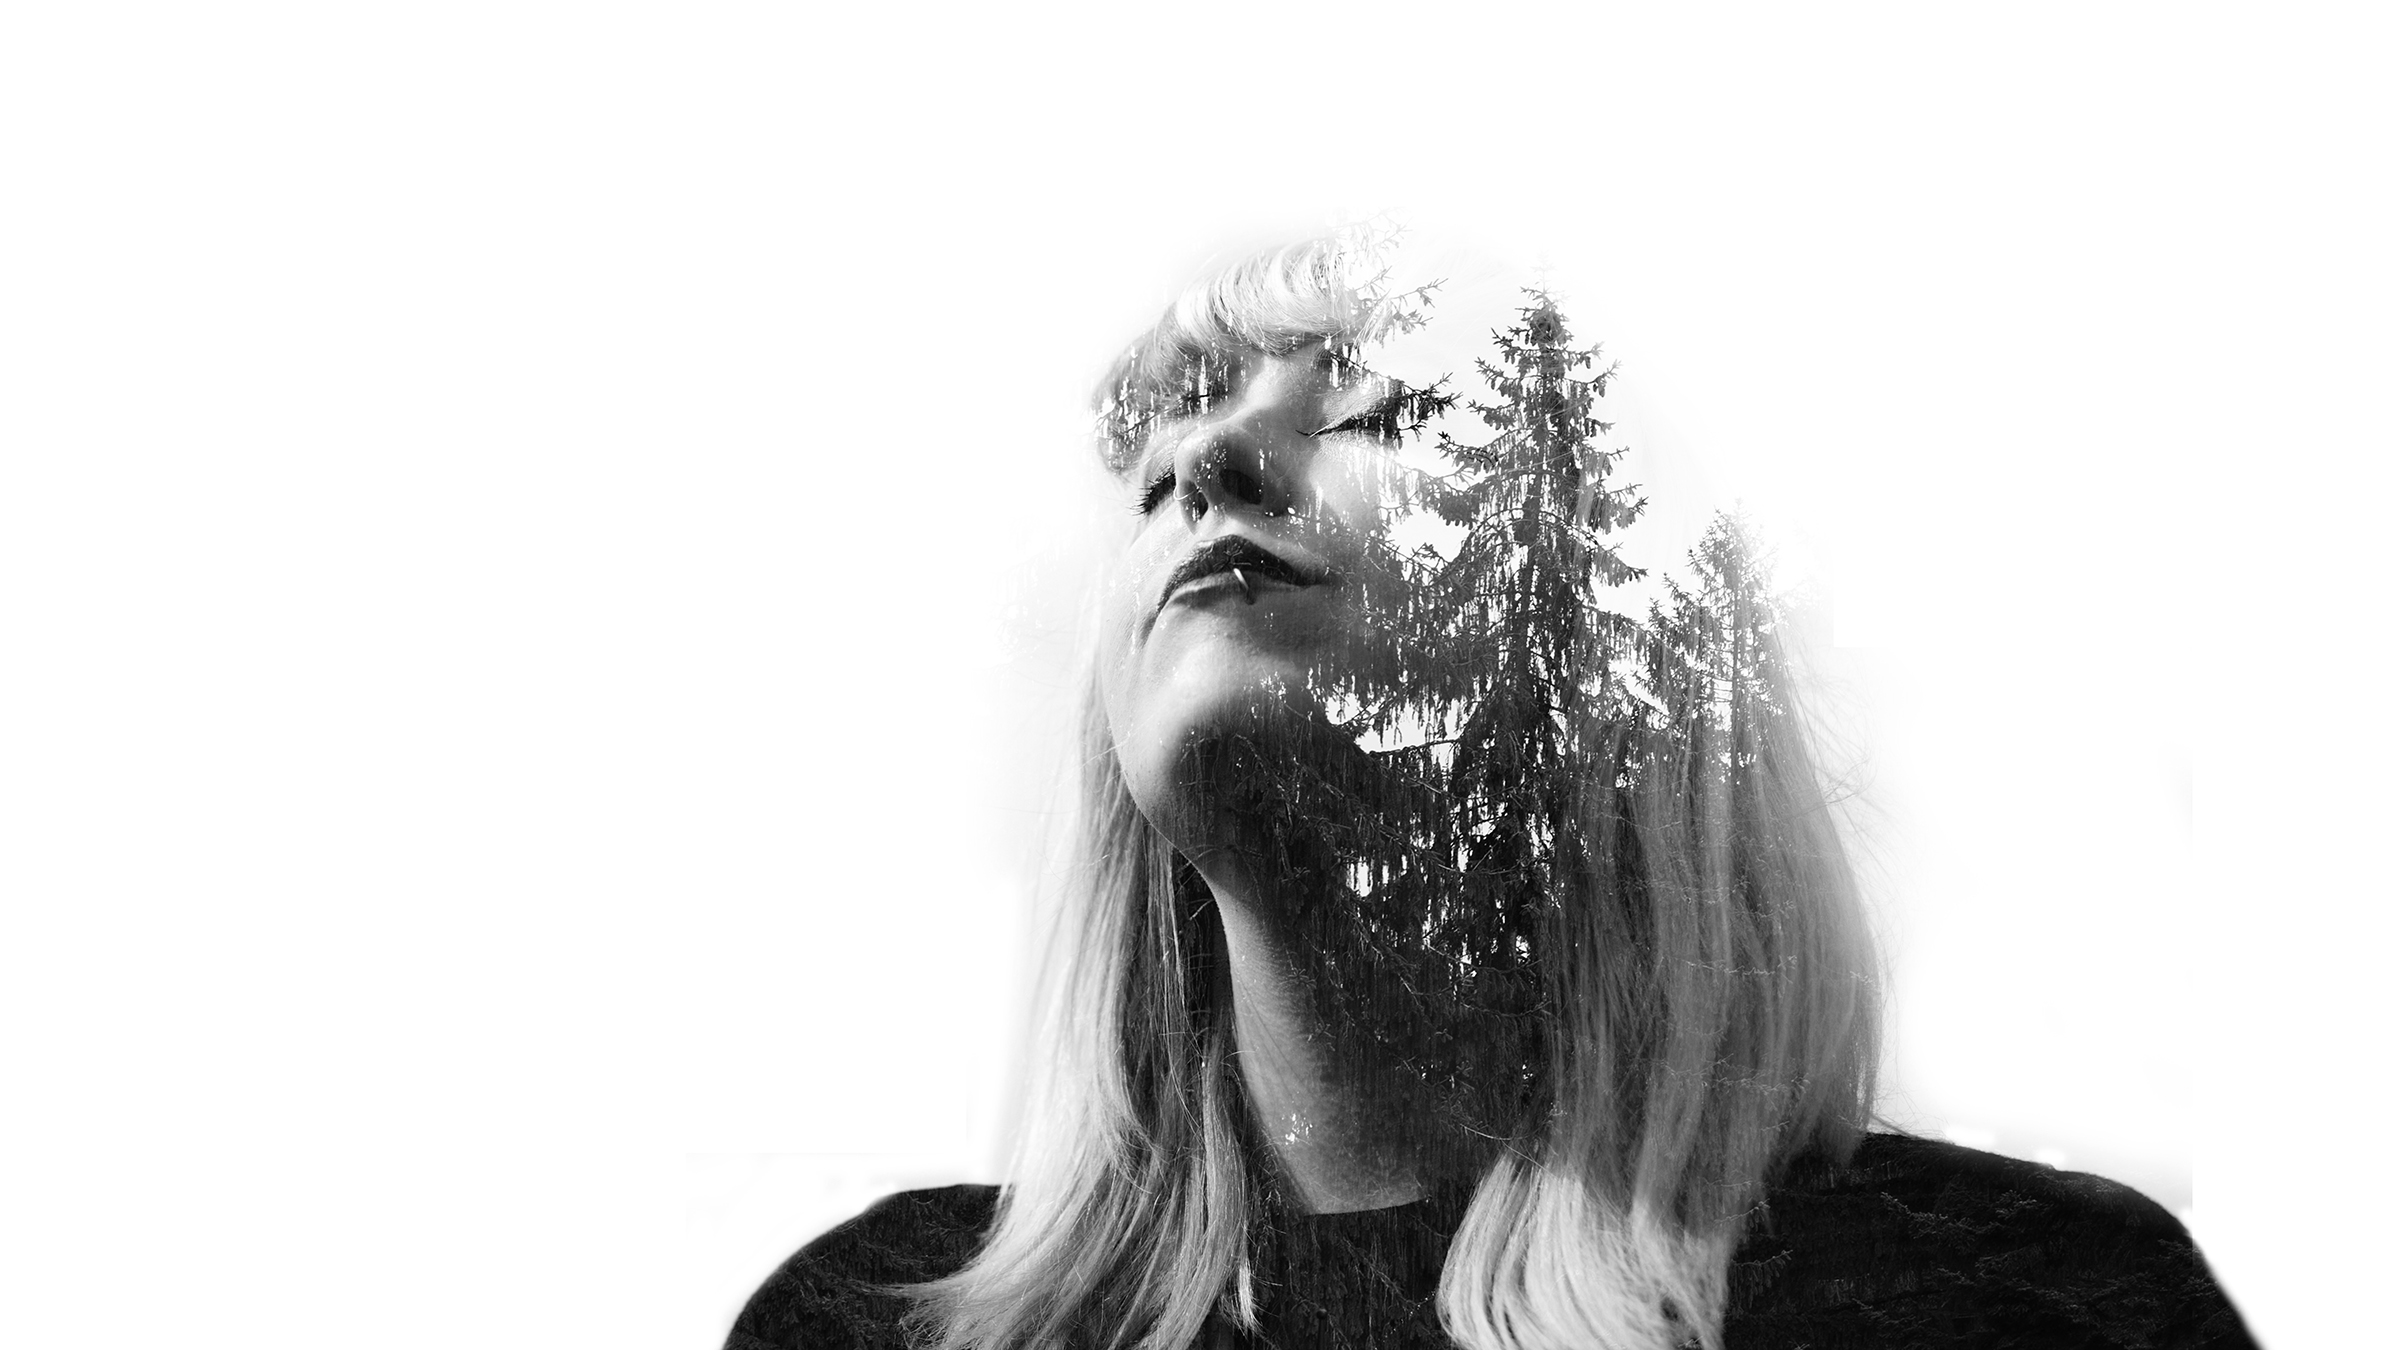 PREMIERE: Broken Forest releases Christmas single 'Stories Under the Pine Tree'